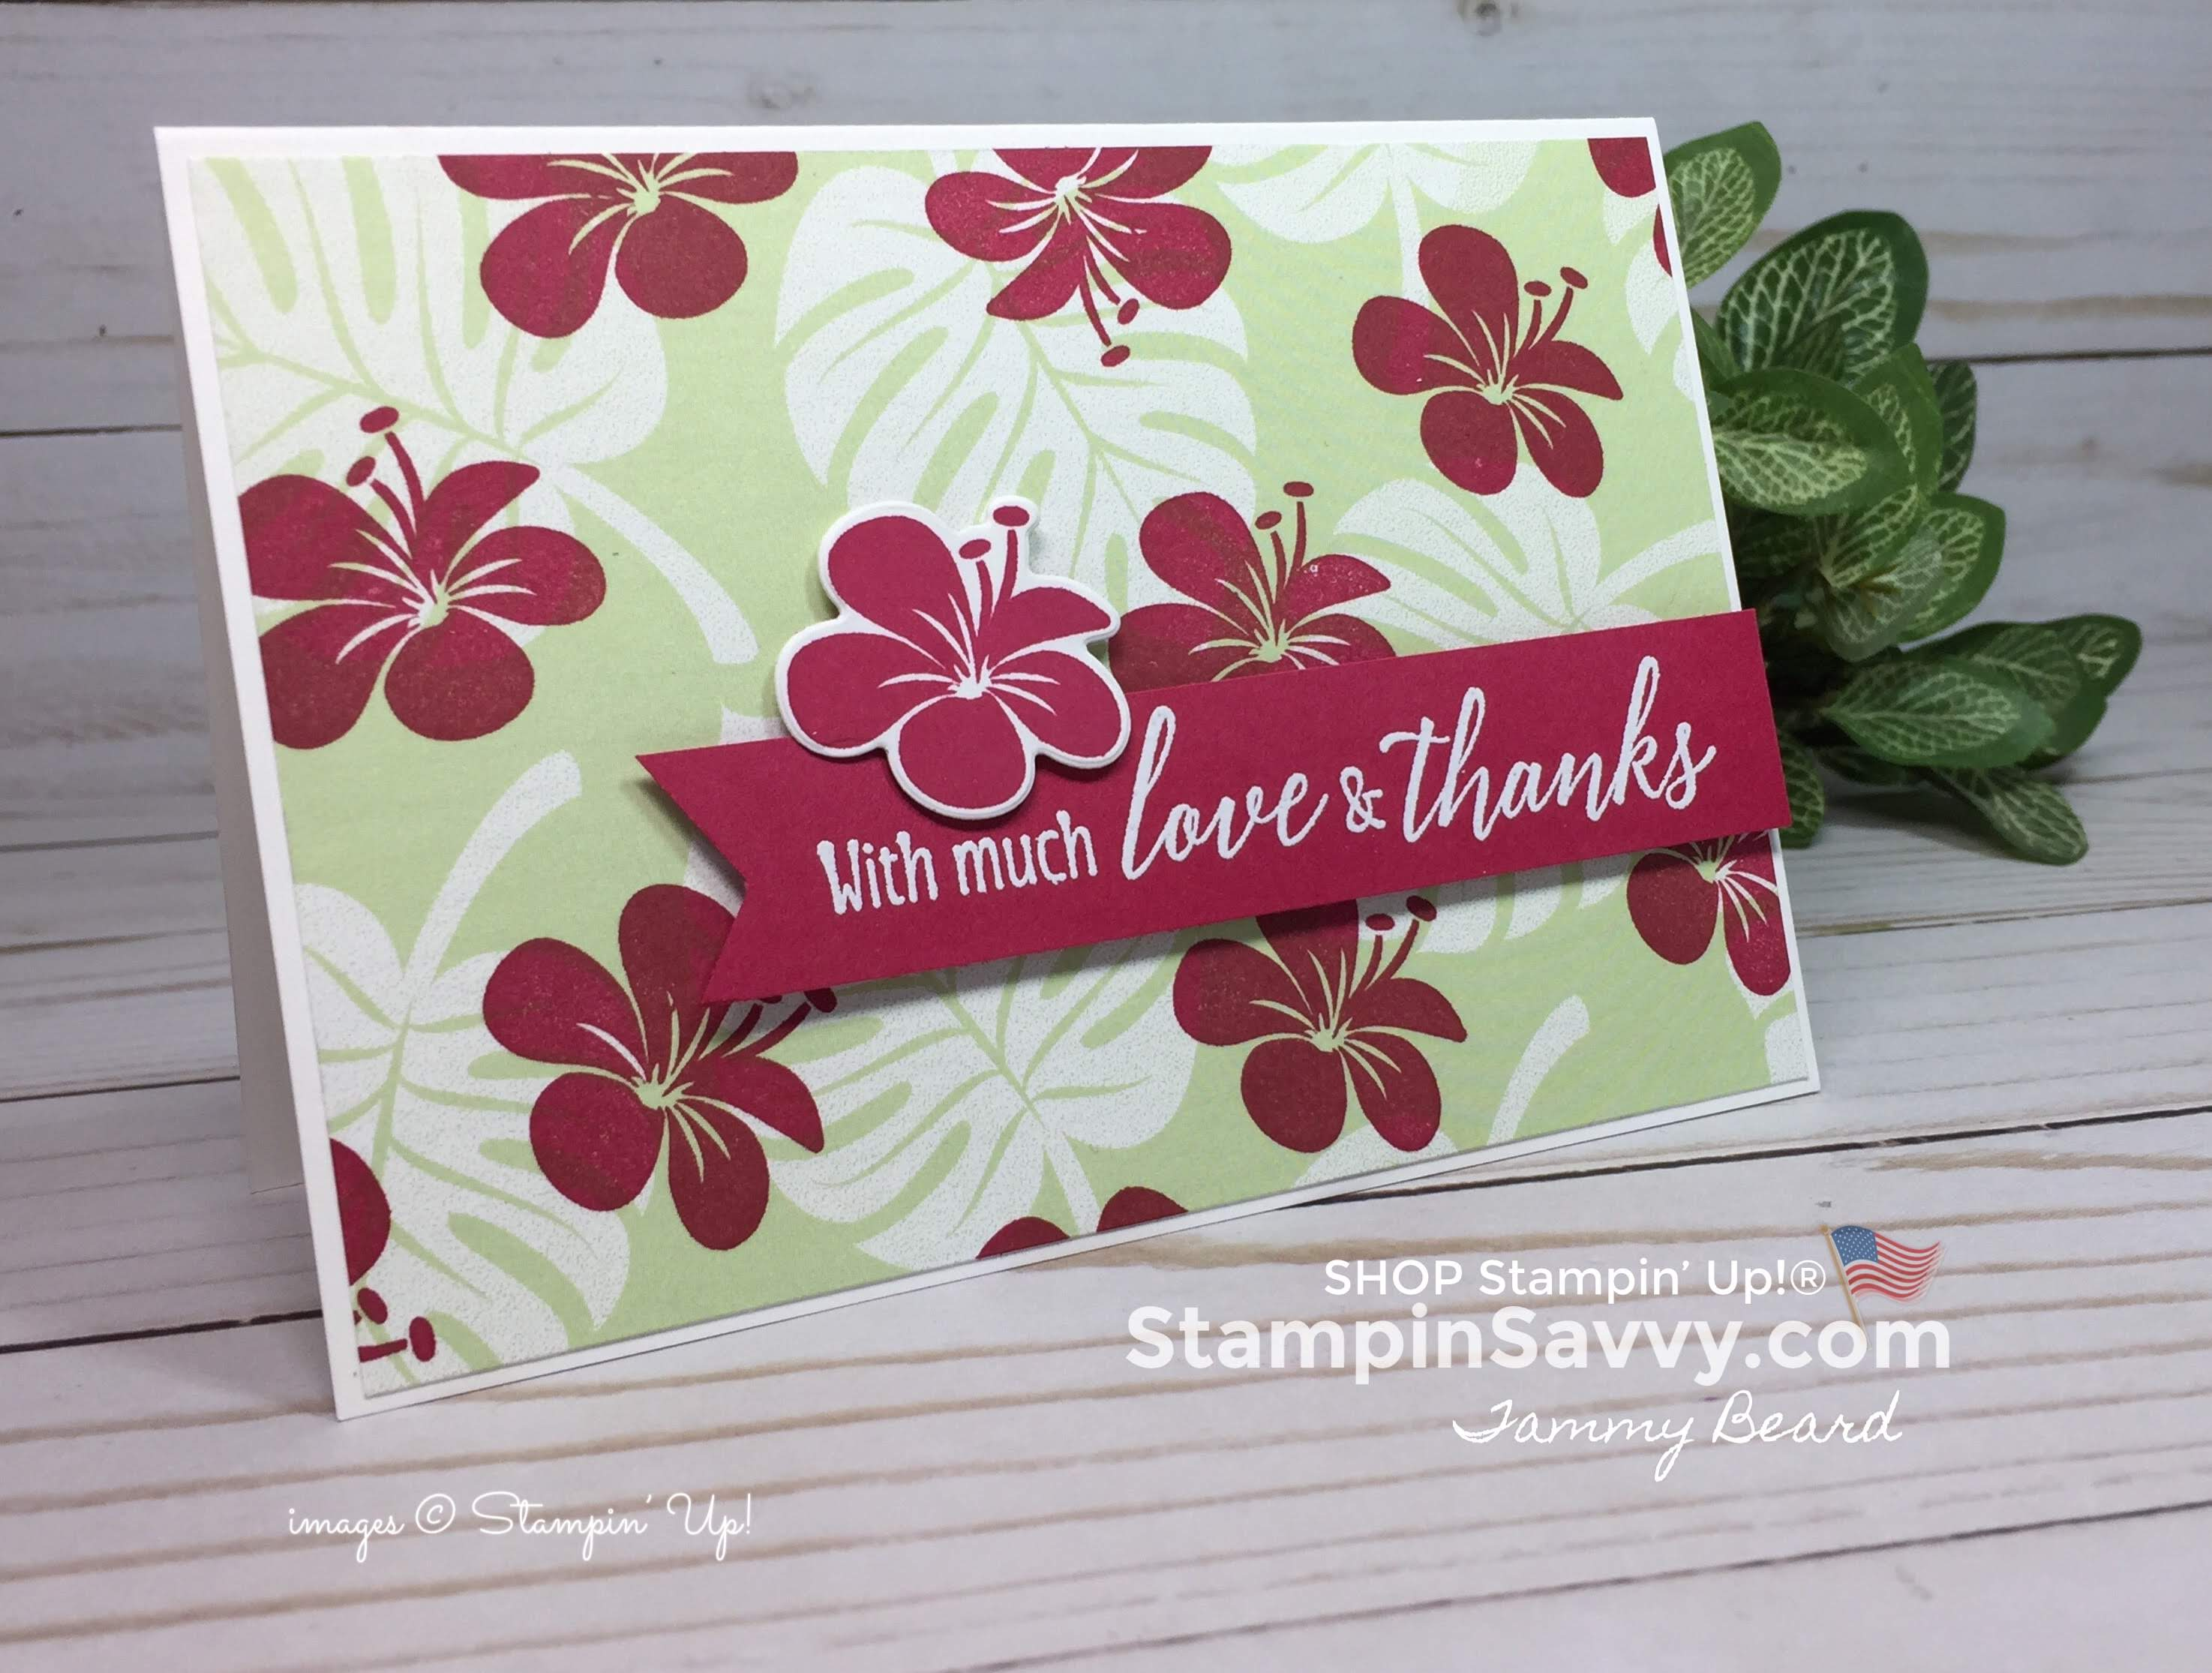 tropical escape cards, stampin up, card ideas, stampinup, stampin savvy, 3, tammy beard